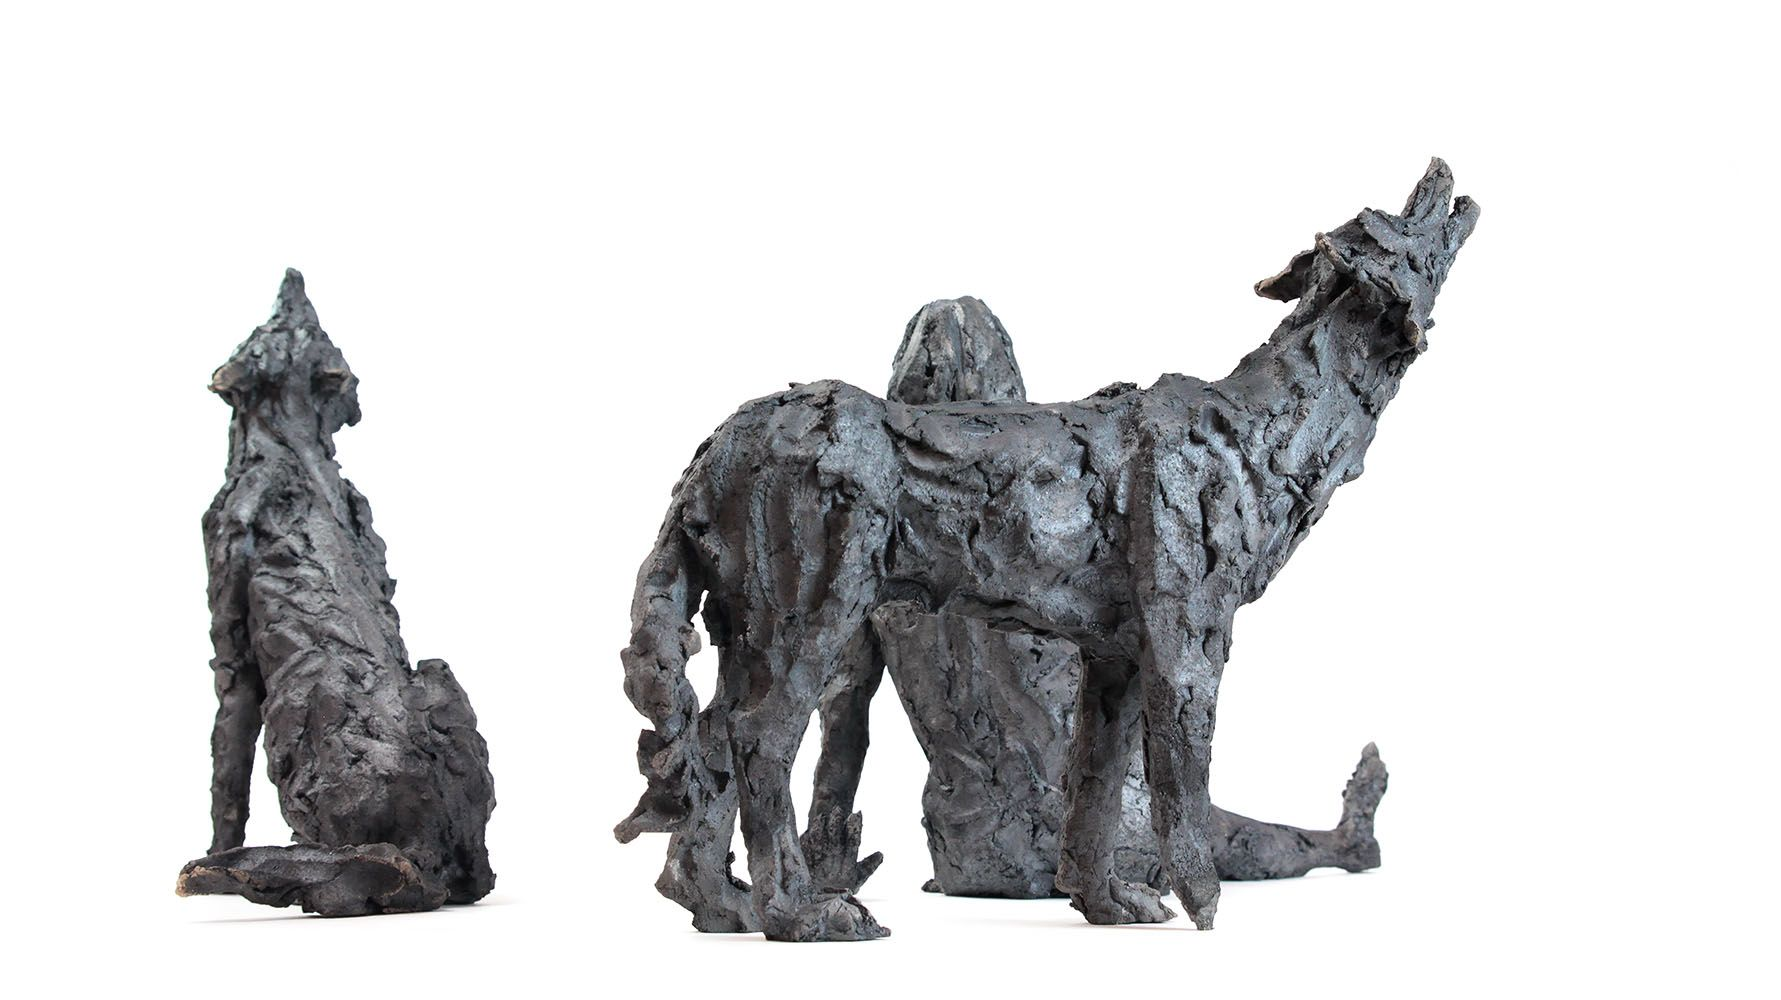 Wolf Pack,Cécile Raynal,Sculpture, detail 4